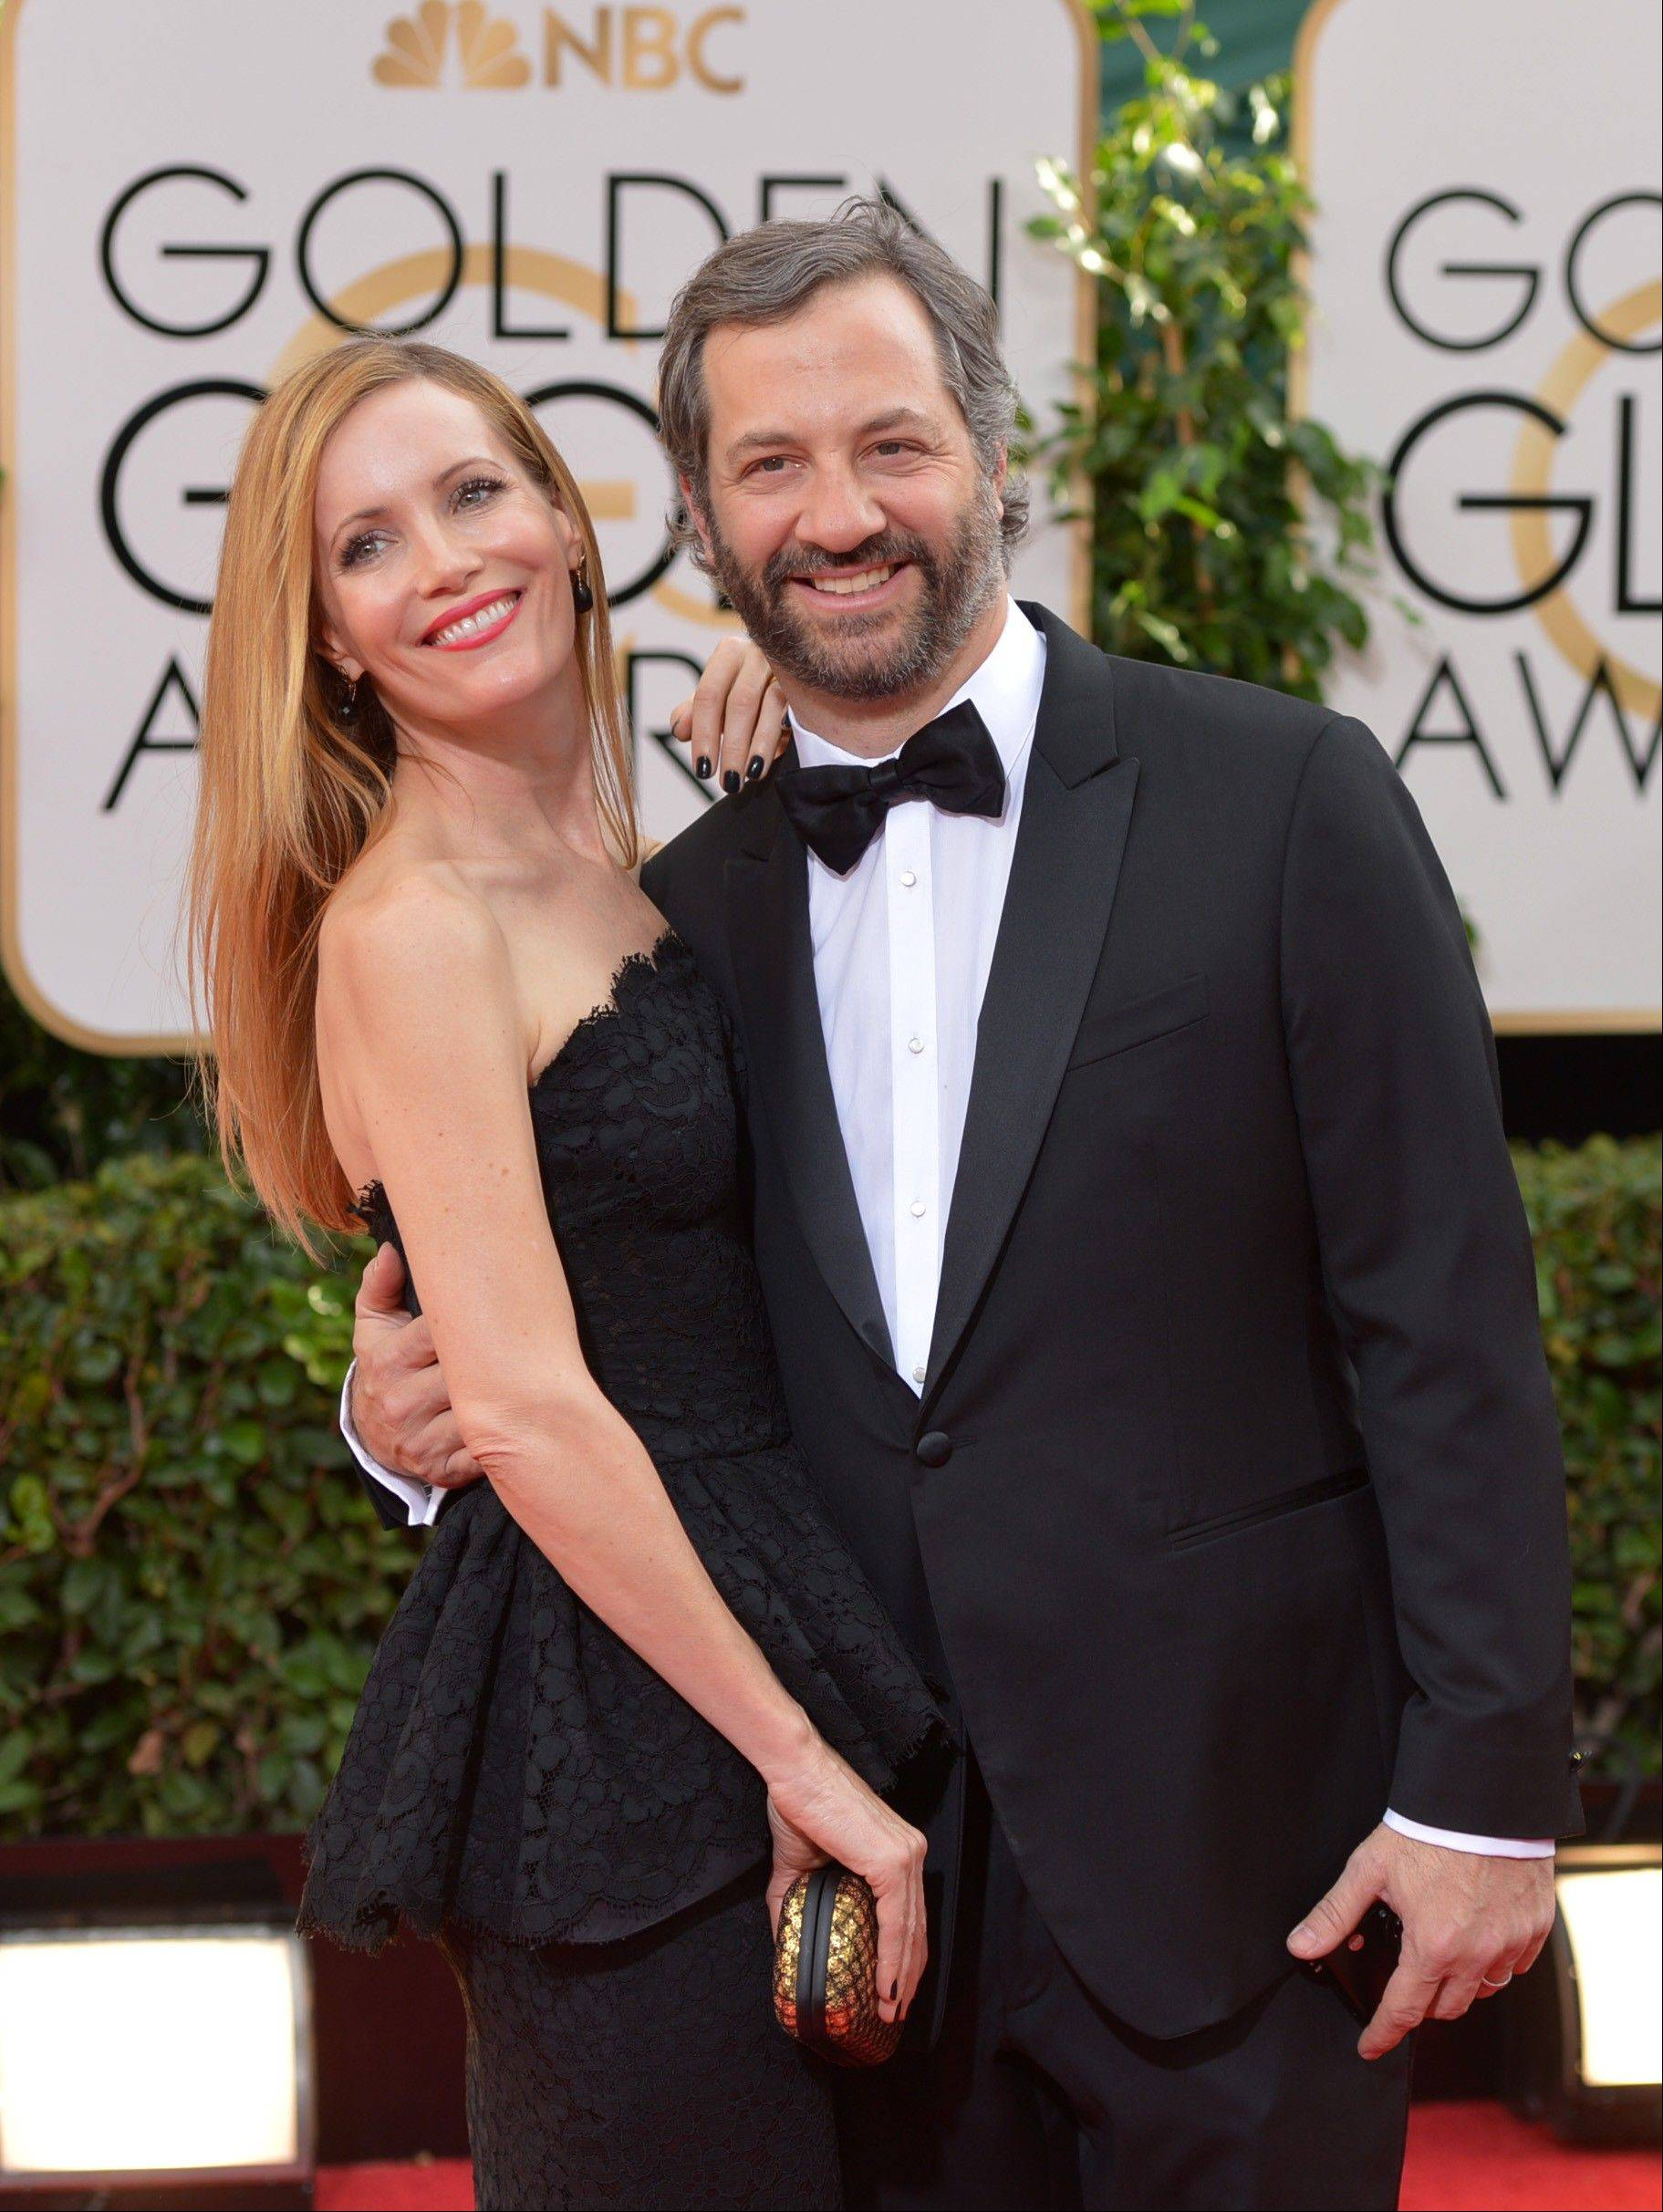 Actress Leslie Mann stayed closed to her husband producer/writer/director Judd Apatow as the couple made their way down the red carpet.